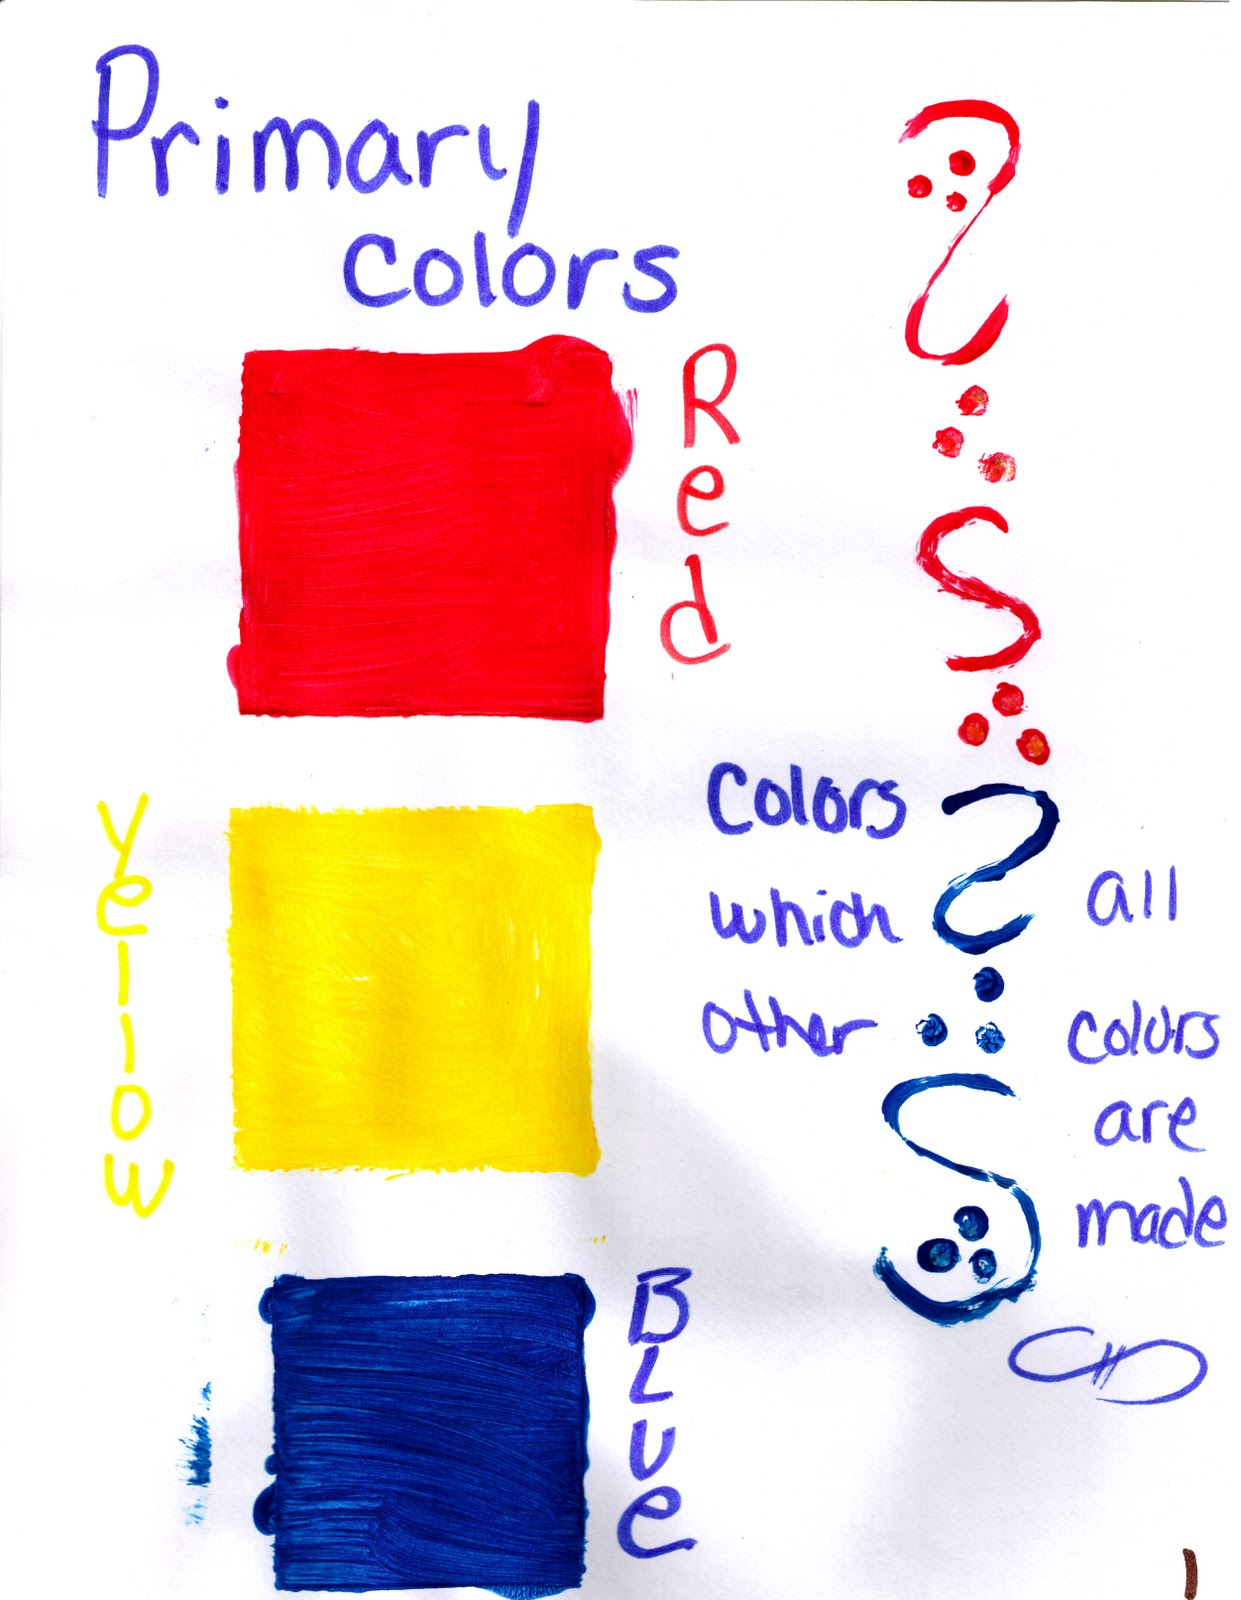 In Those Books We Make The Color Wheel Examples And Definitions Of Cool Colors Warm All Mixed By Us Form Primary Colorsdo You